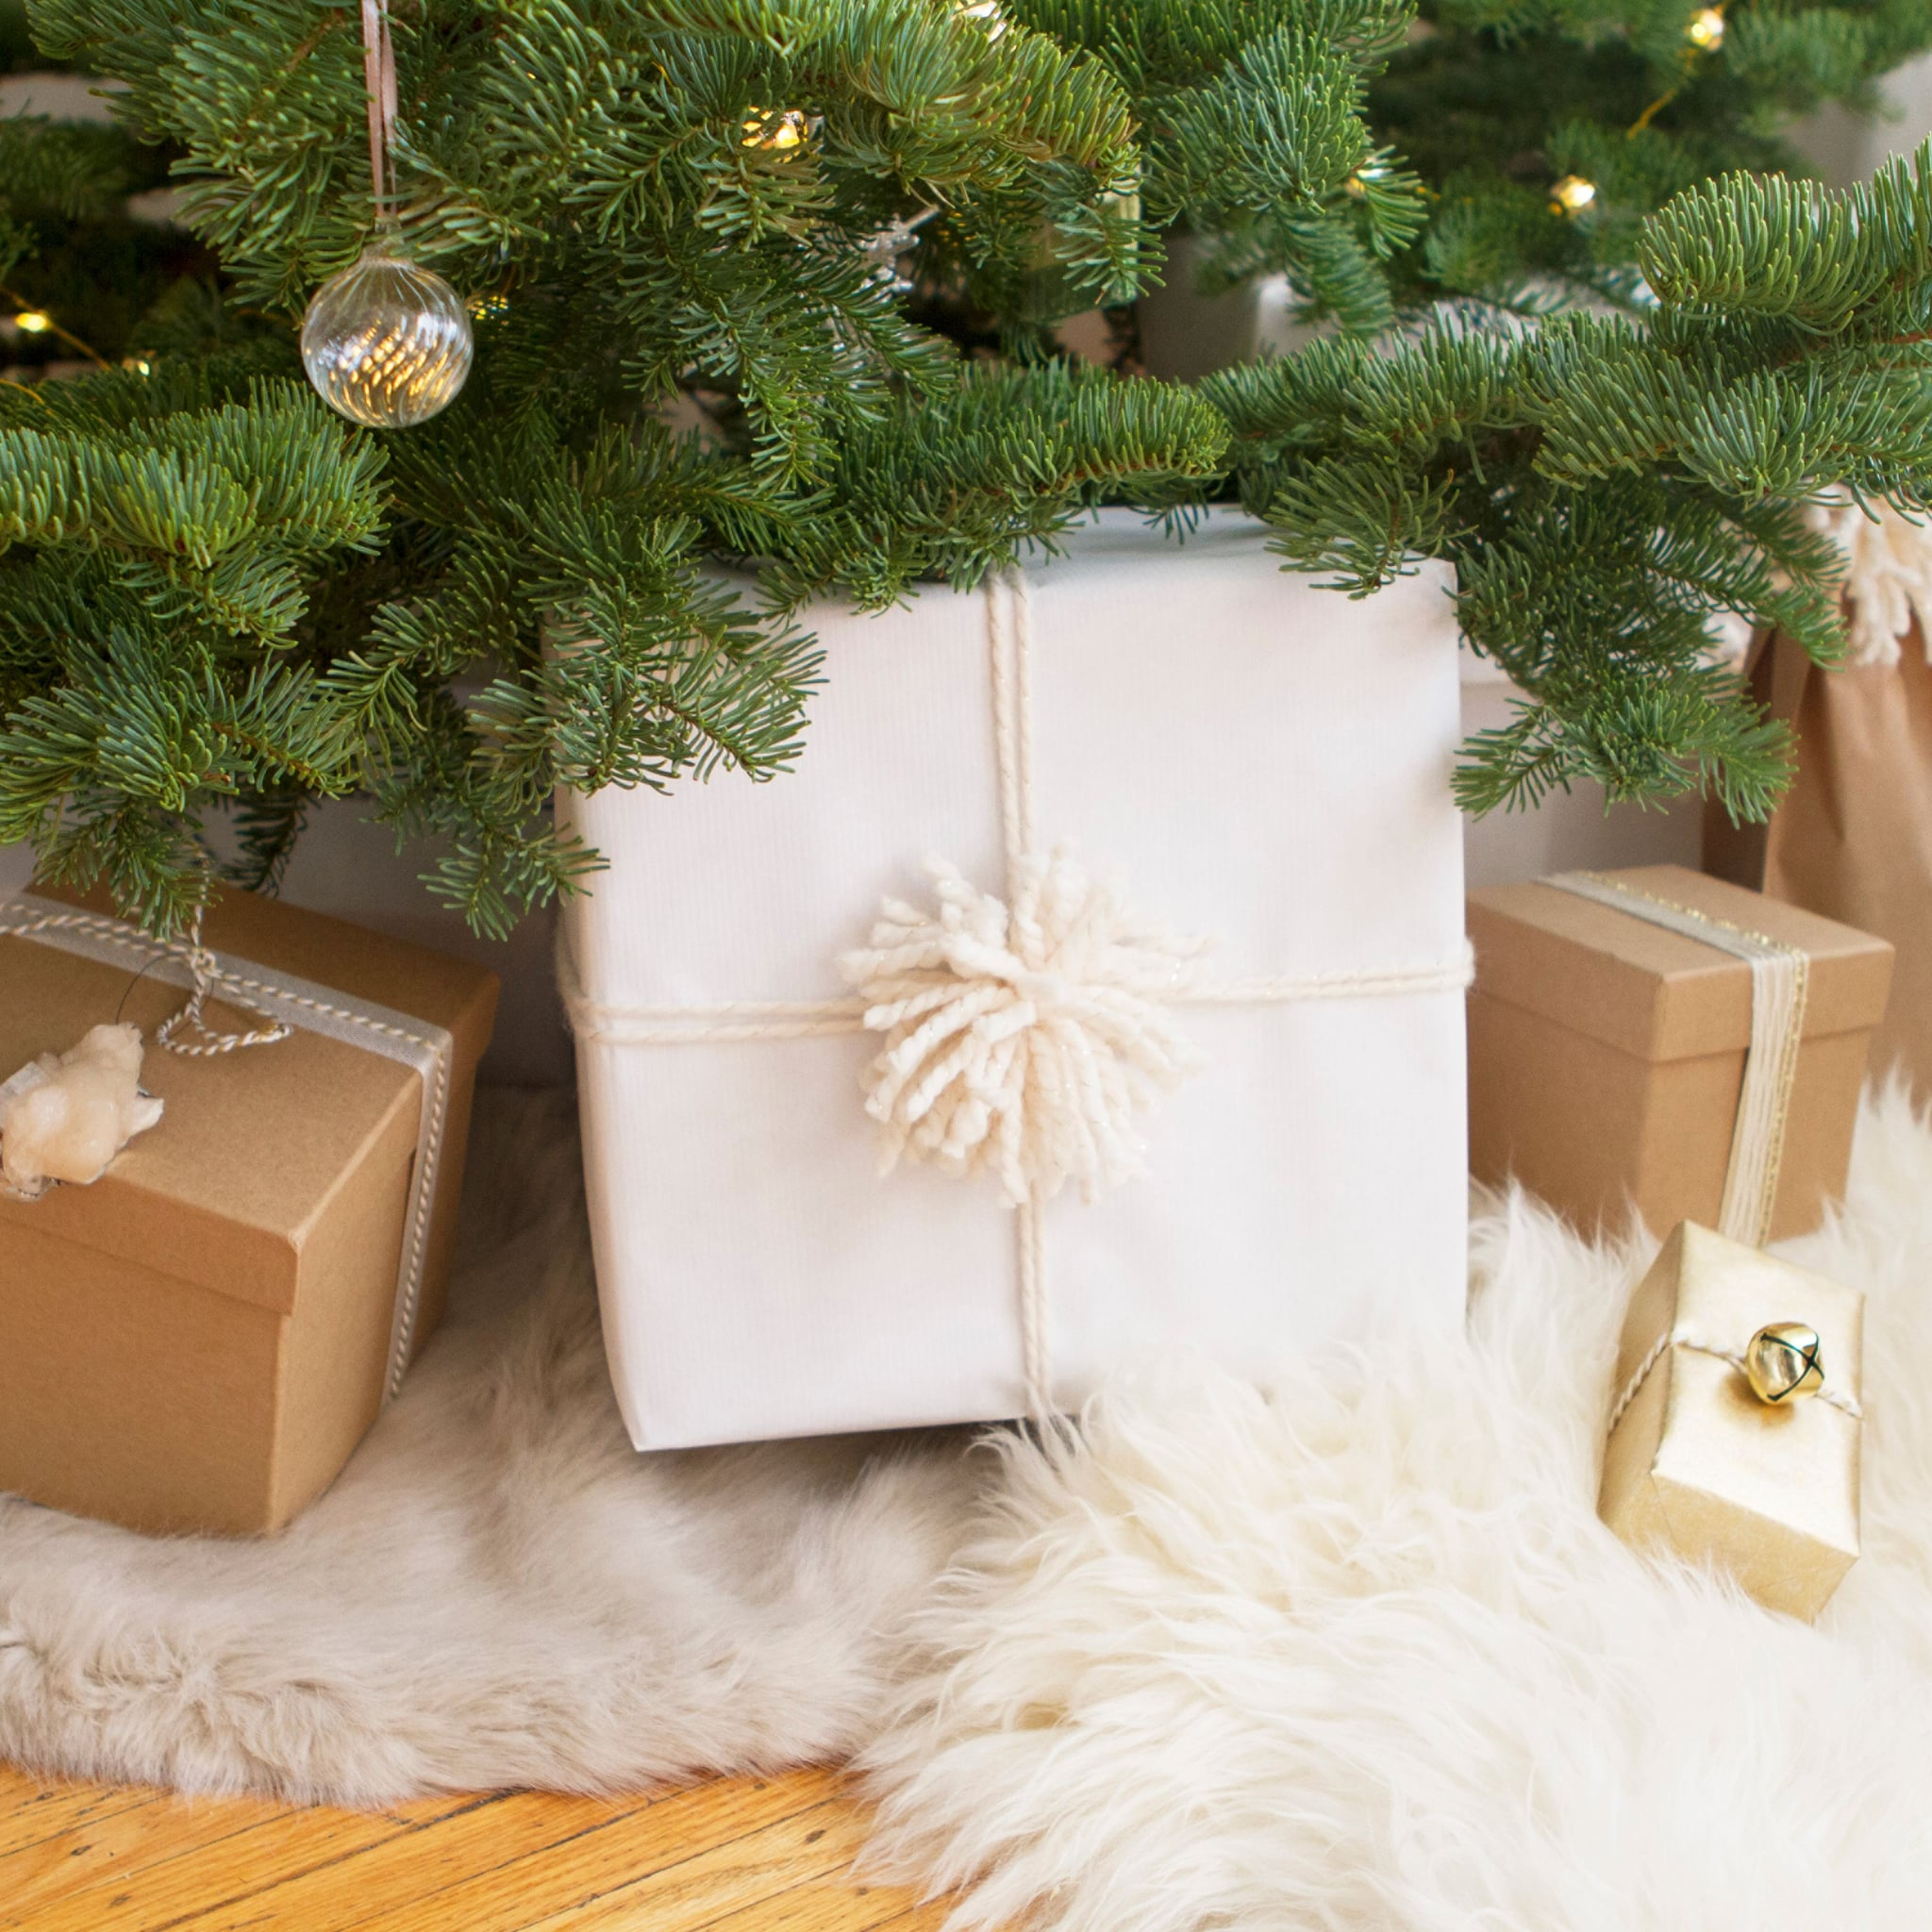 Image result for holiday gifts image